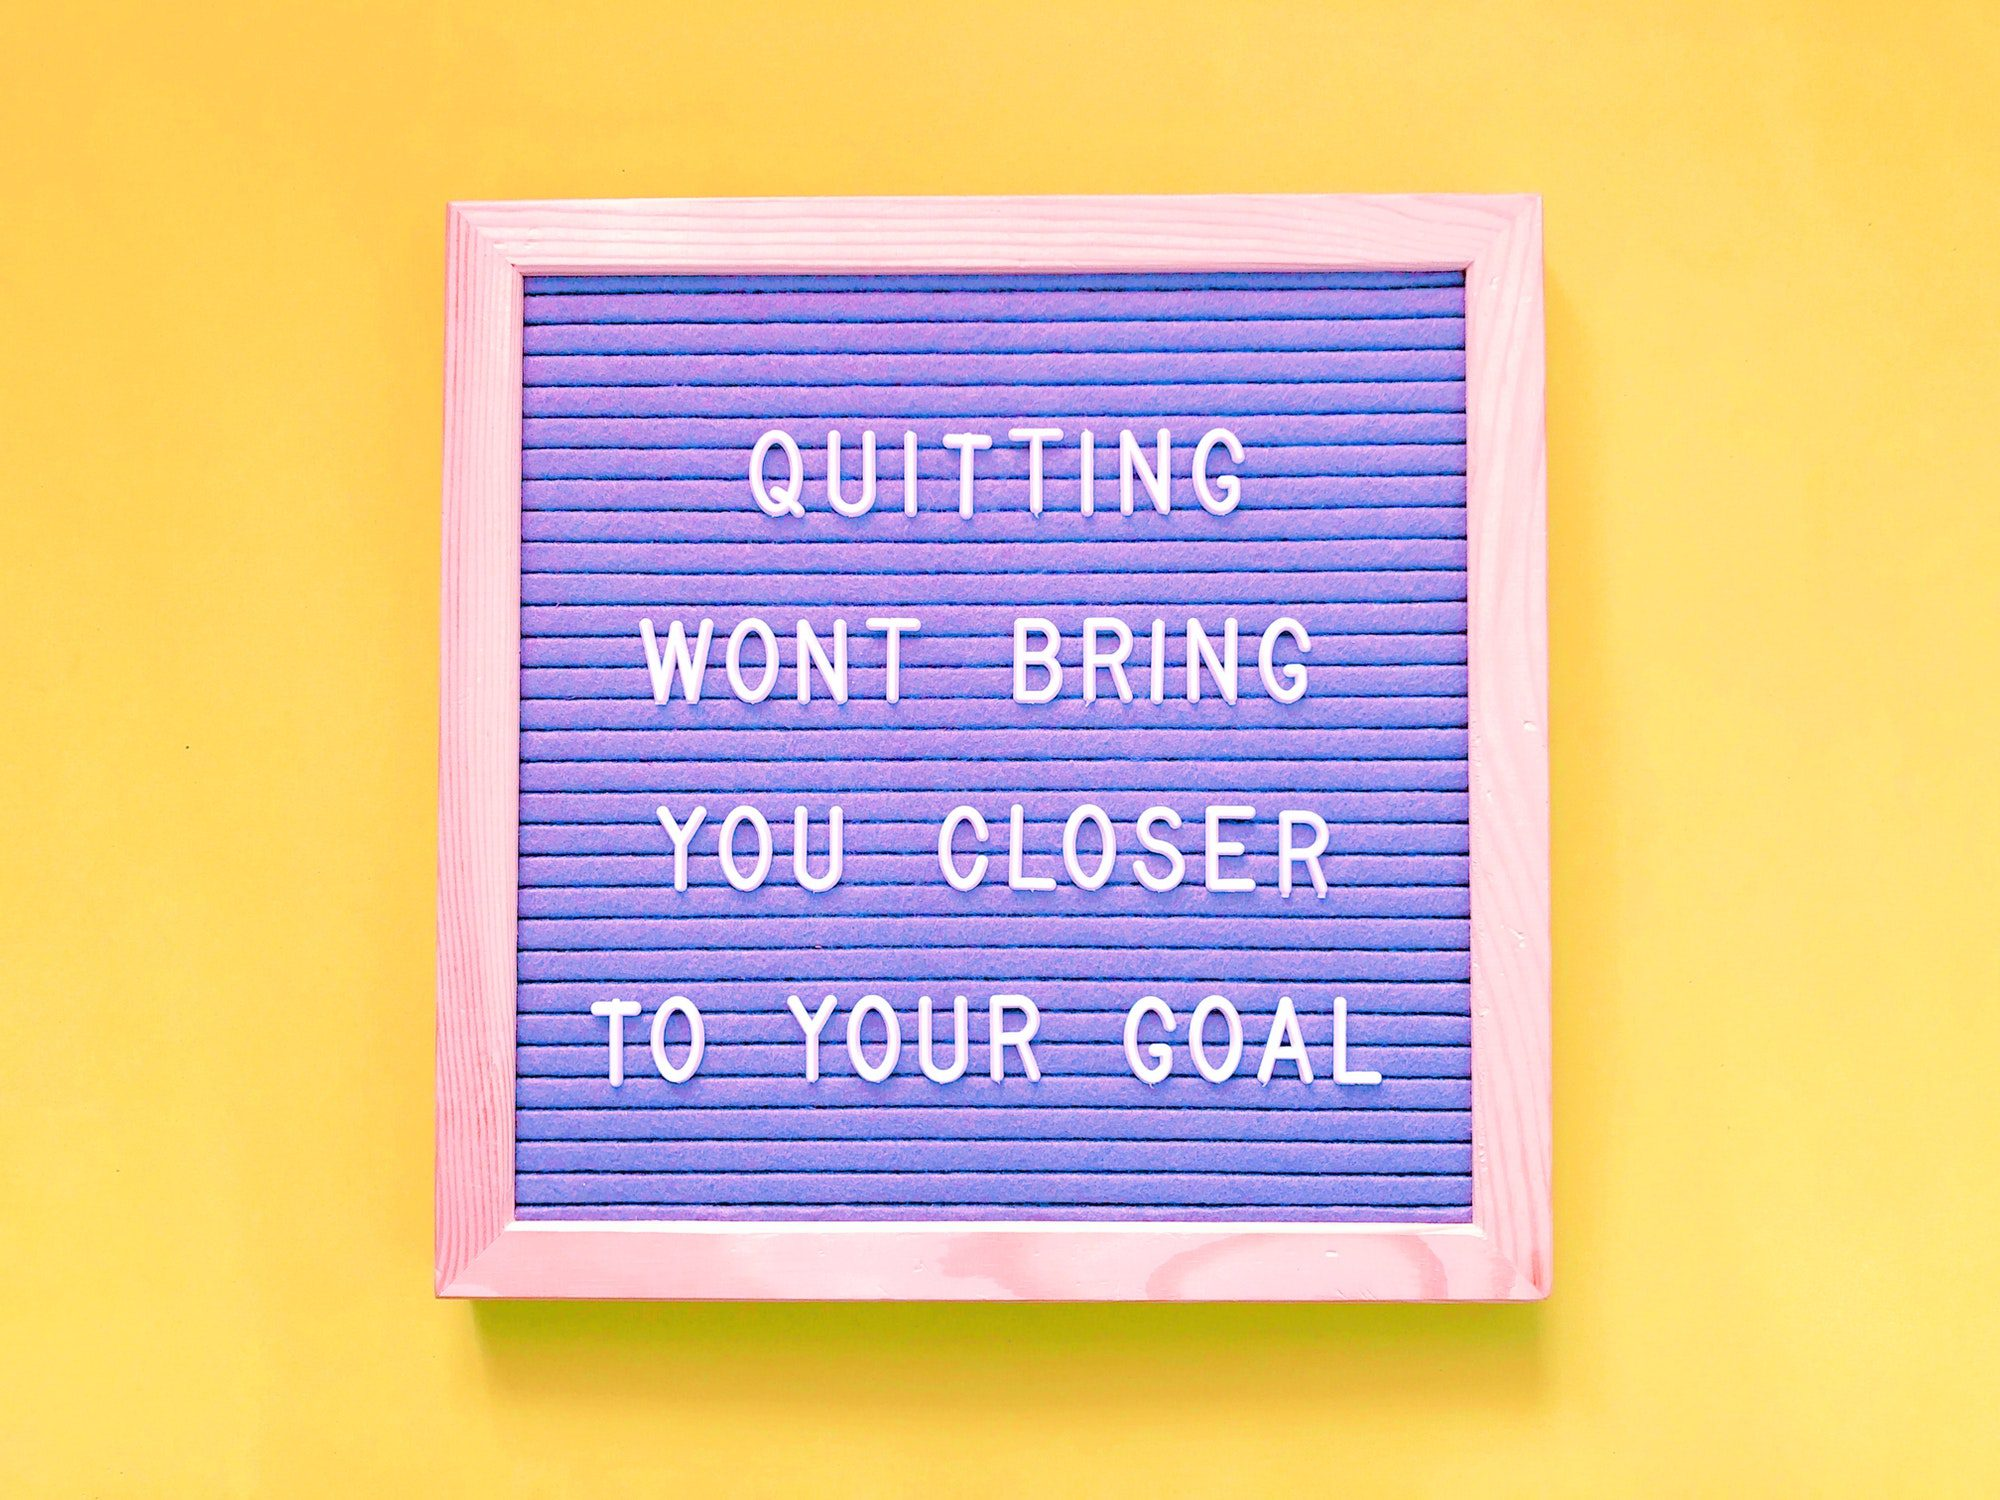 Quitting Won't Bring You Closer To Your Goal. So Don't Quit!